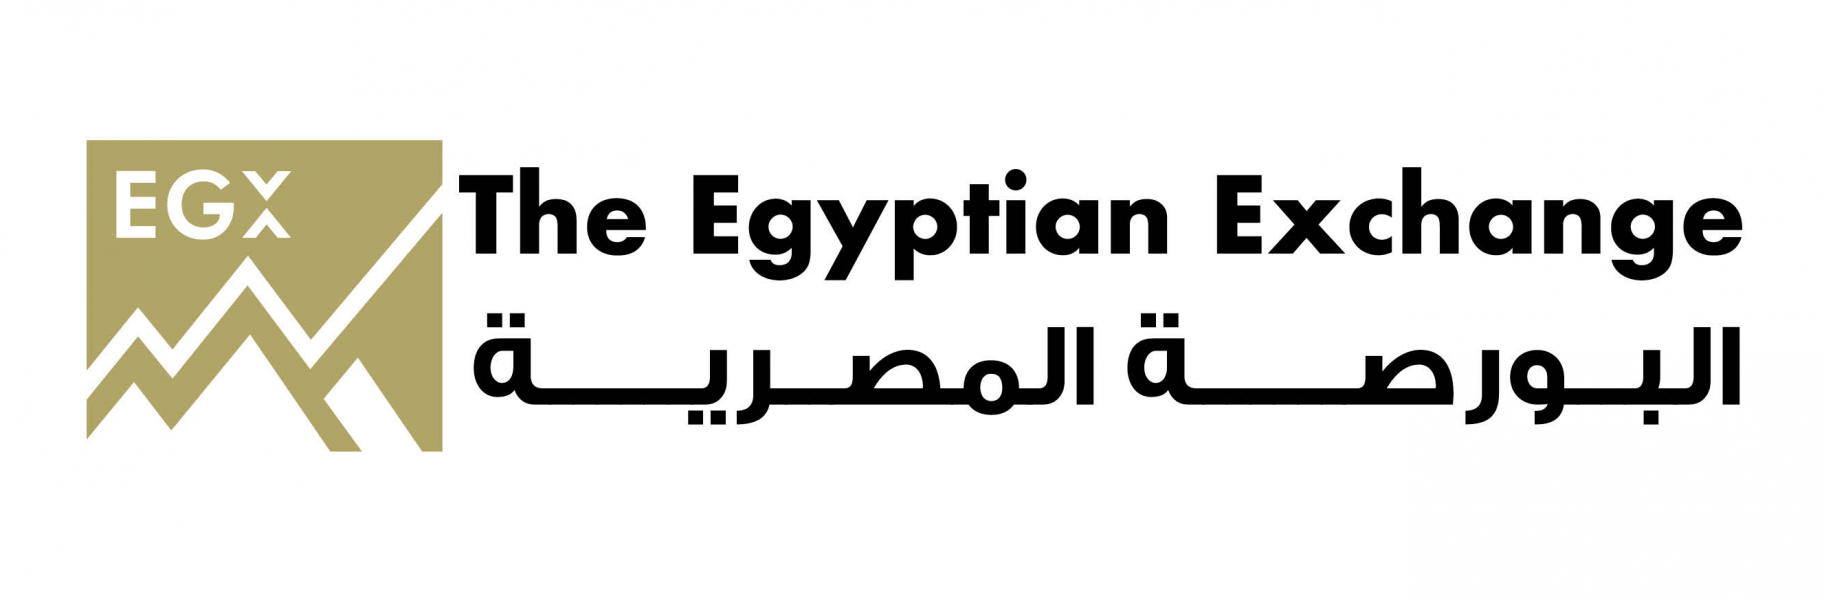 The-Egyptian-Exchange-Participates-in-the-Graduati